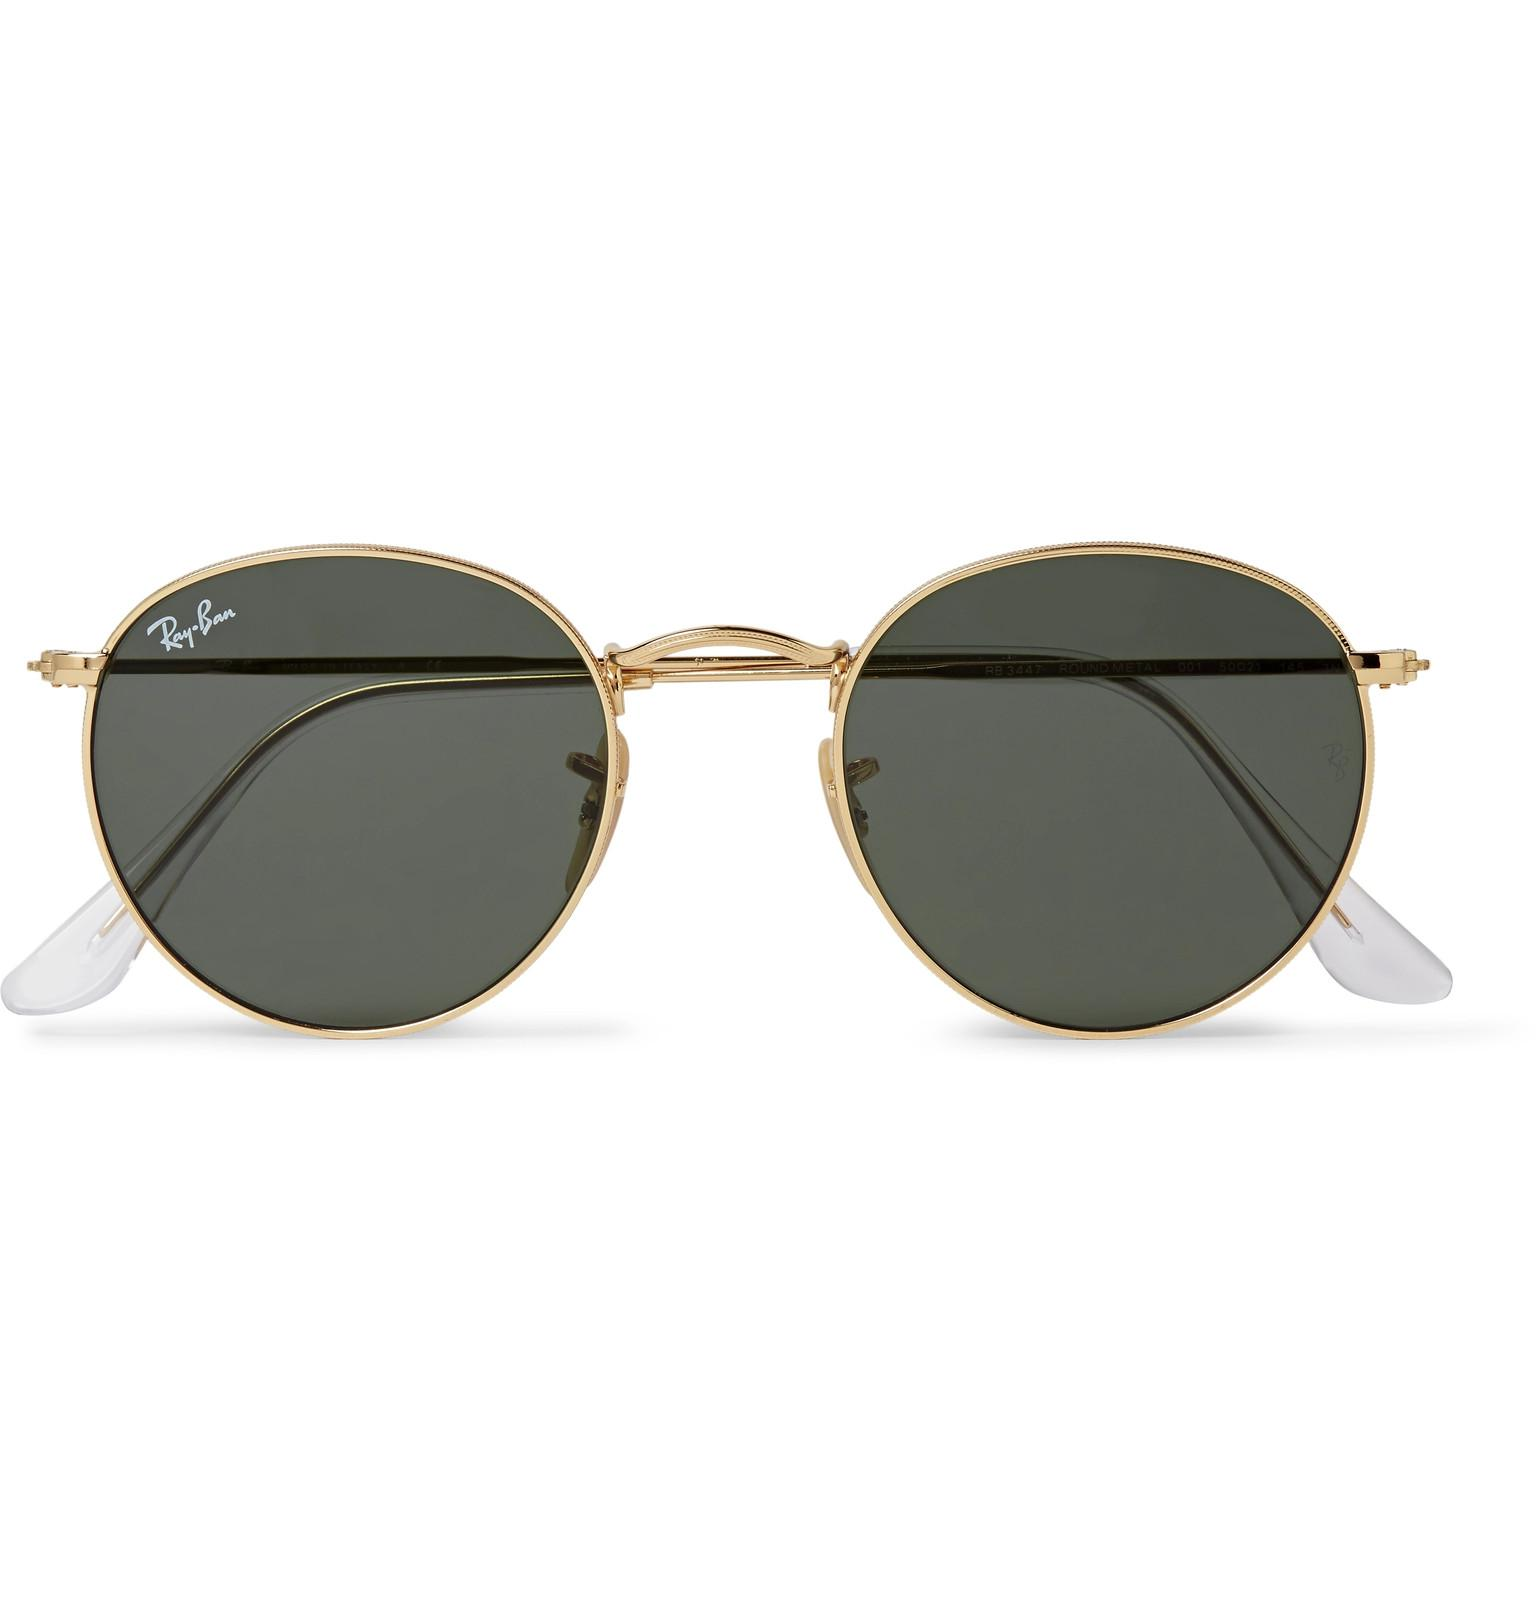 c6daae252dc Ray-Ban Round-frame Gold-tone Sunglasses in Metallic for Men - Lyst